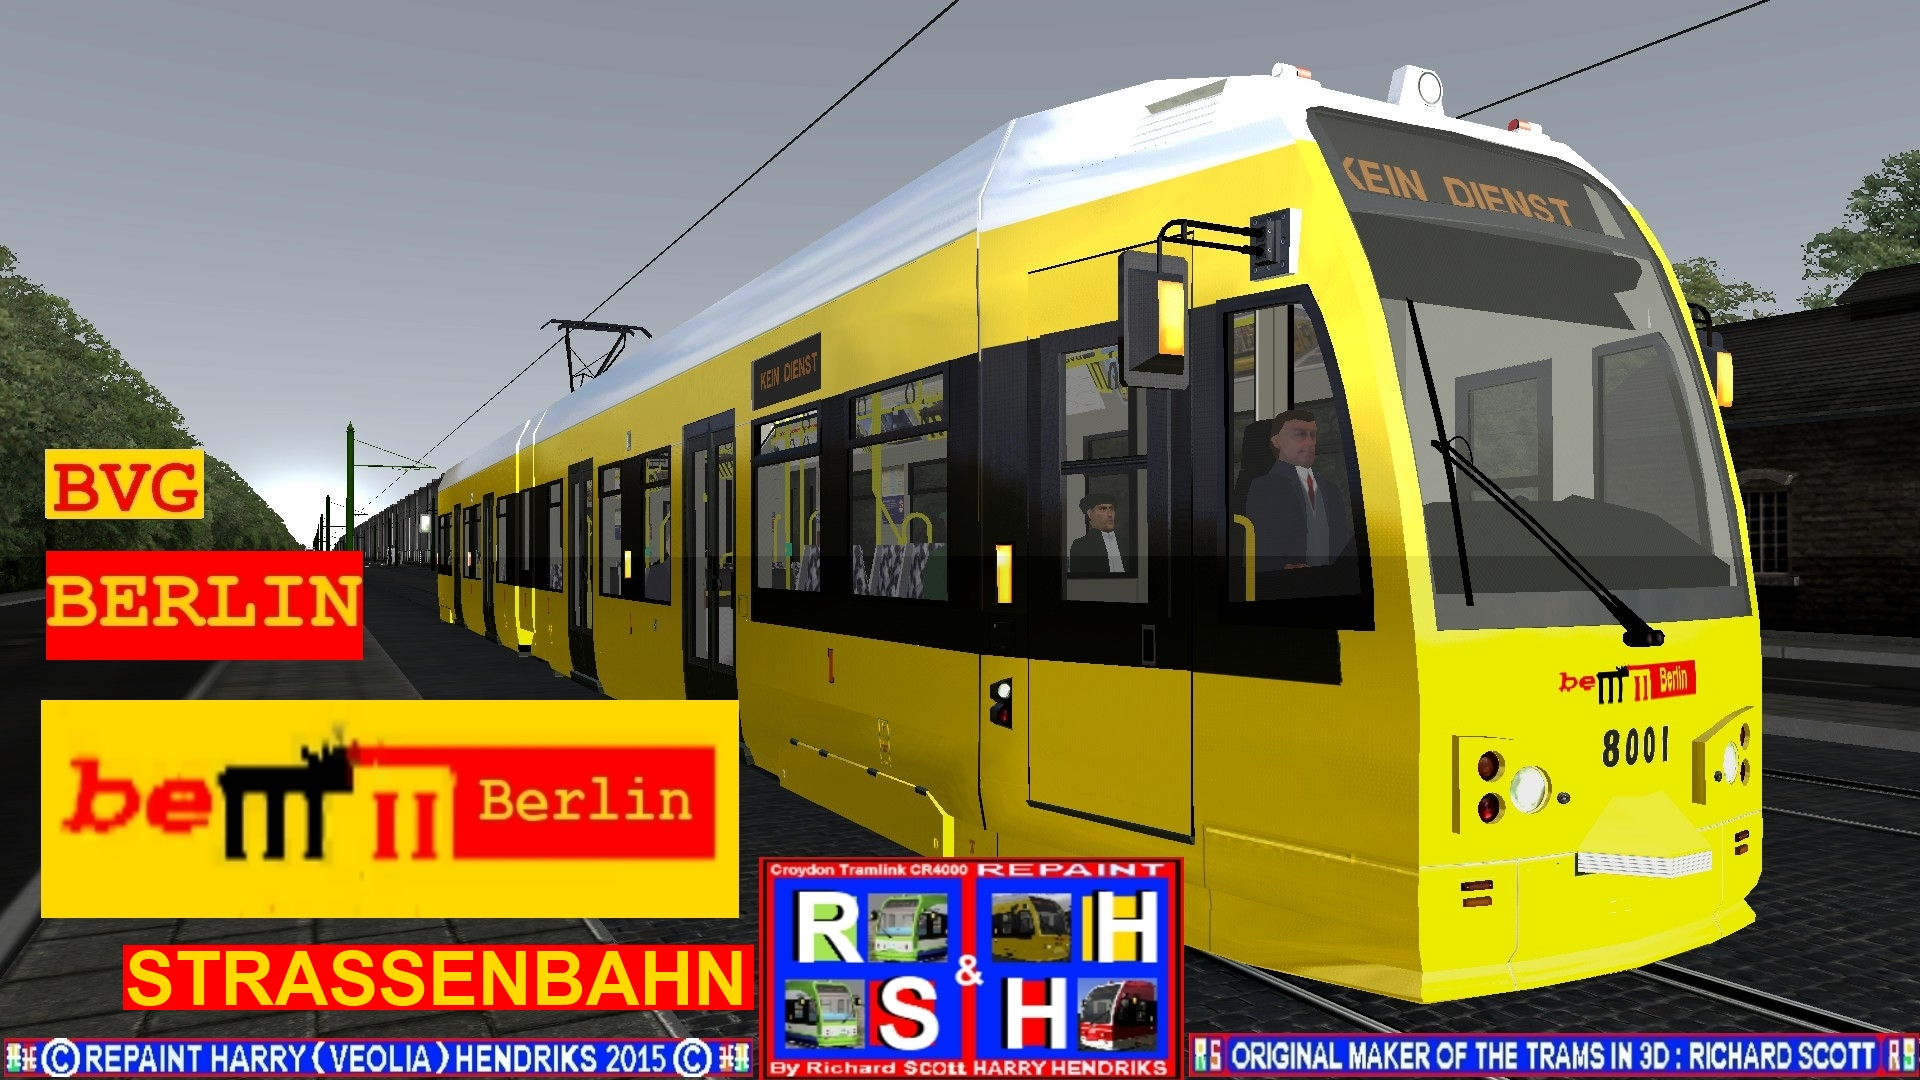 ts2015 de bvg berliner strassenbahn. Black Bedroom Furniture Sets. Home Design Ideas